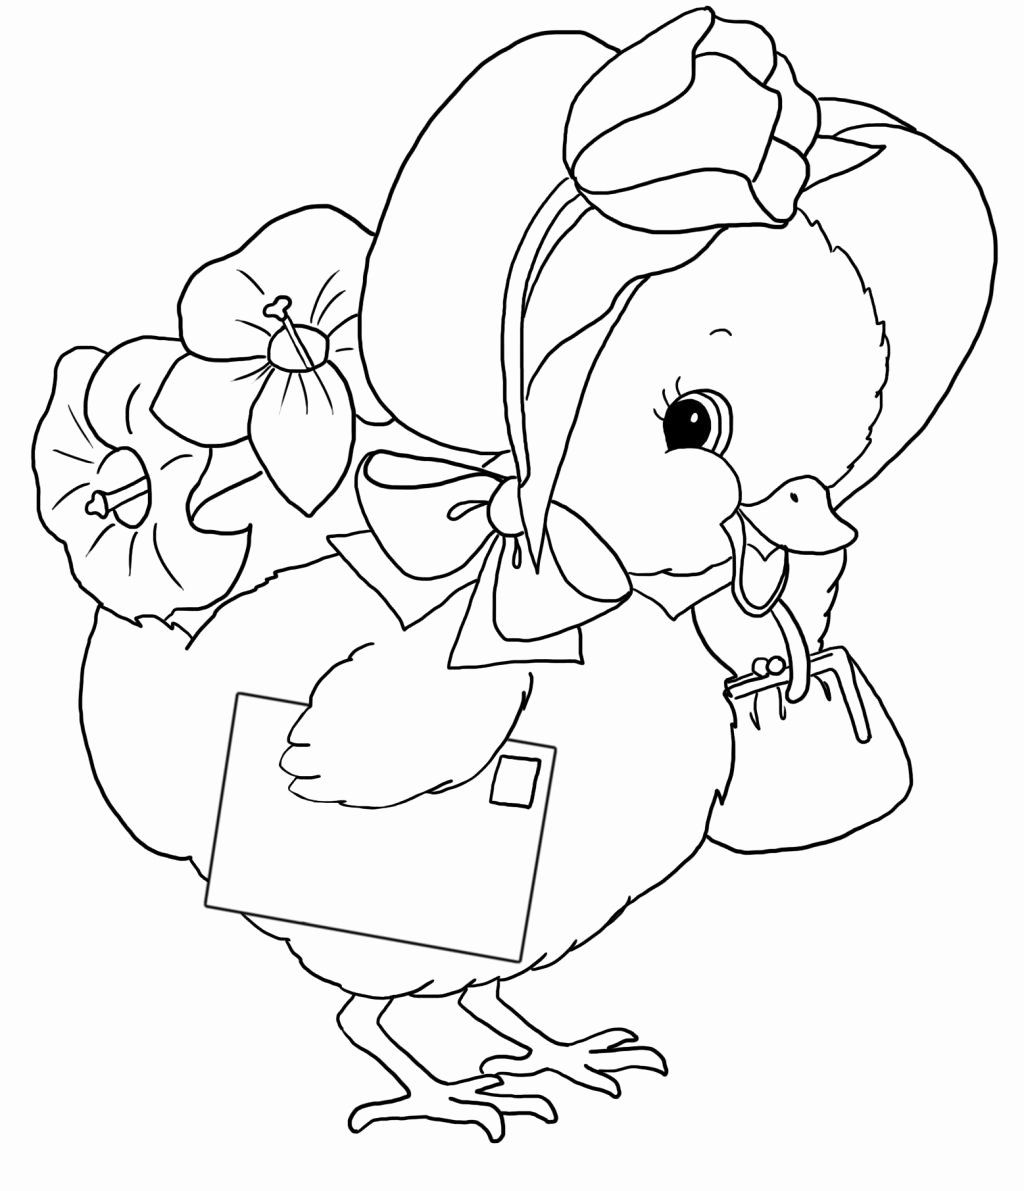 Chicken Nuggets Coloring Page Beautiful Lovely Hen And